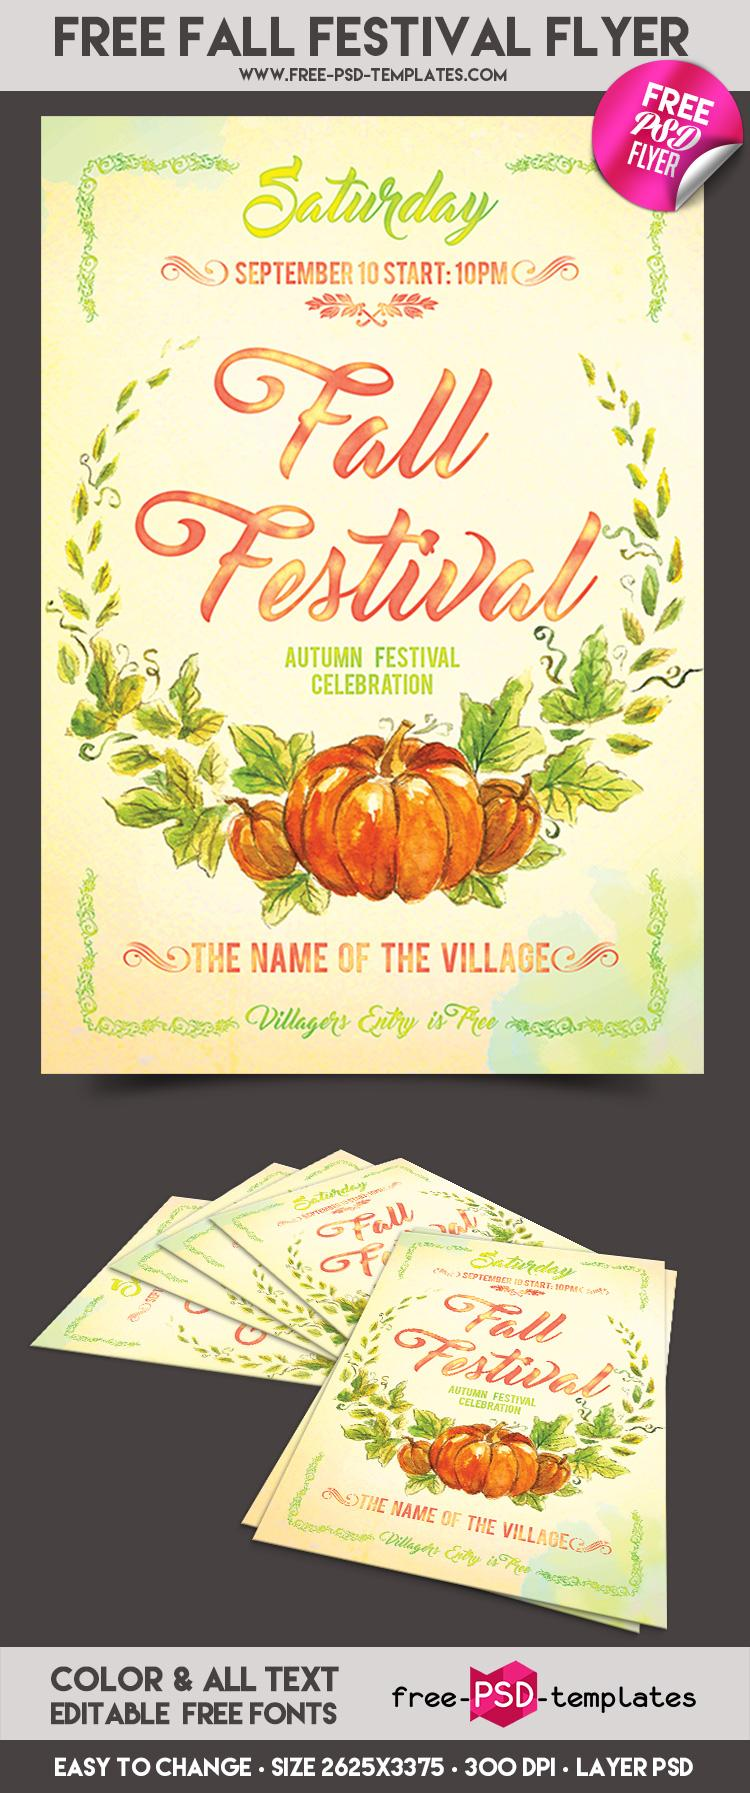 Festival Flyer Templates Free